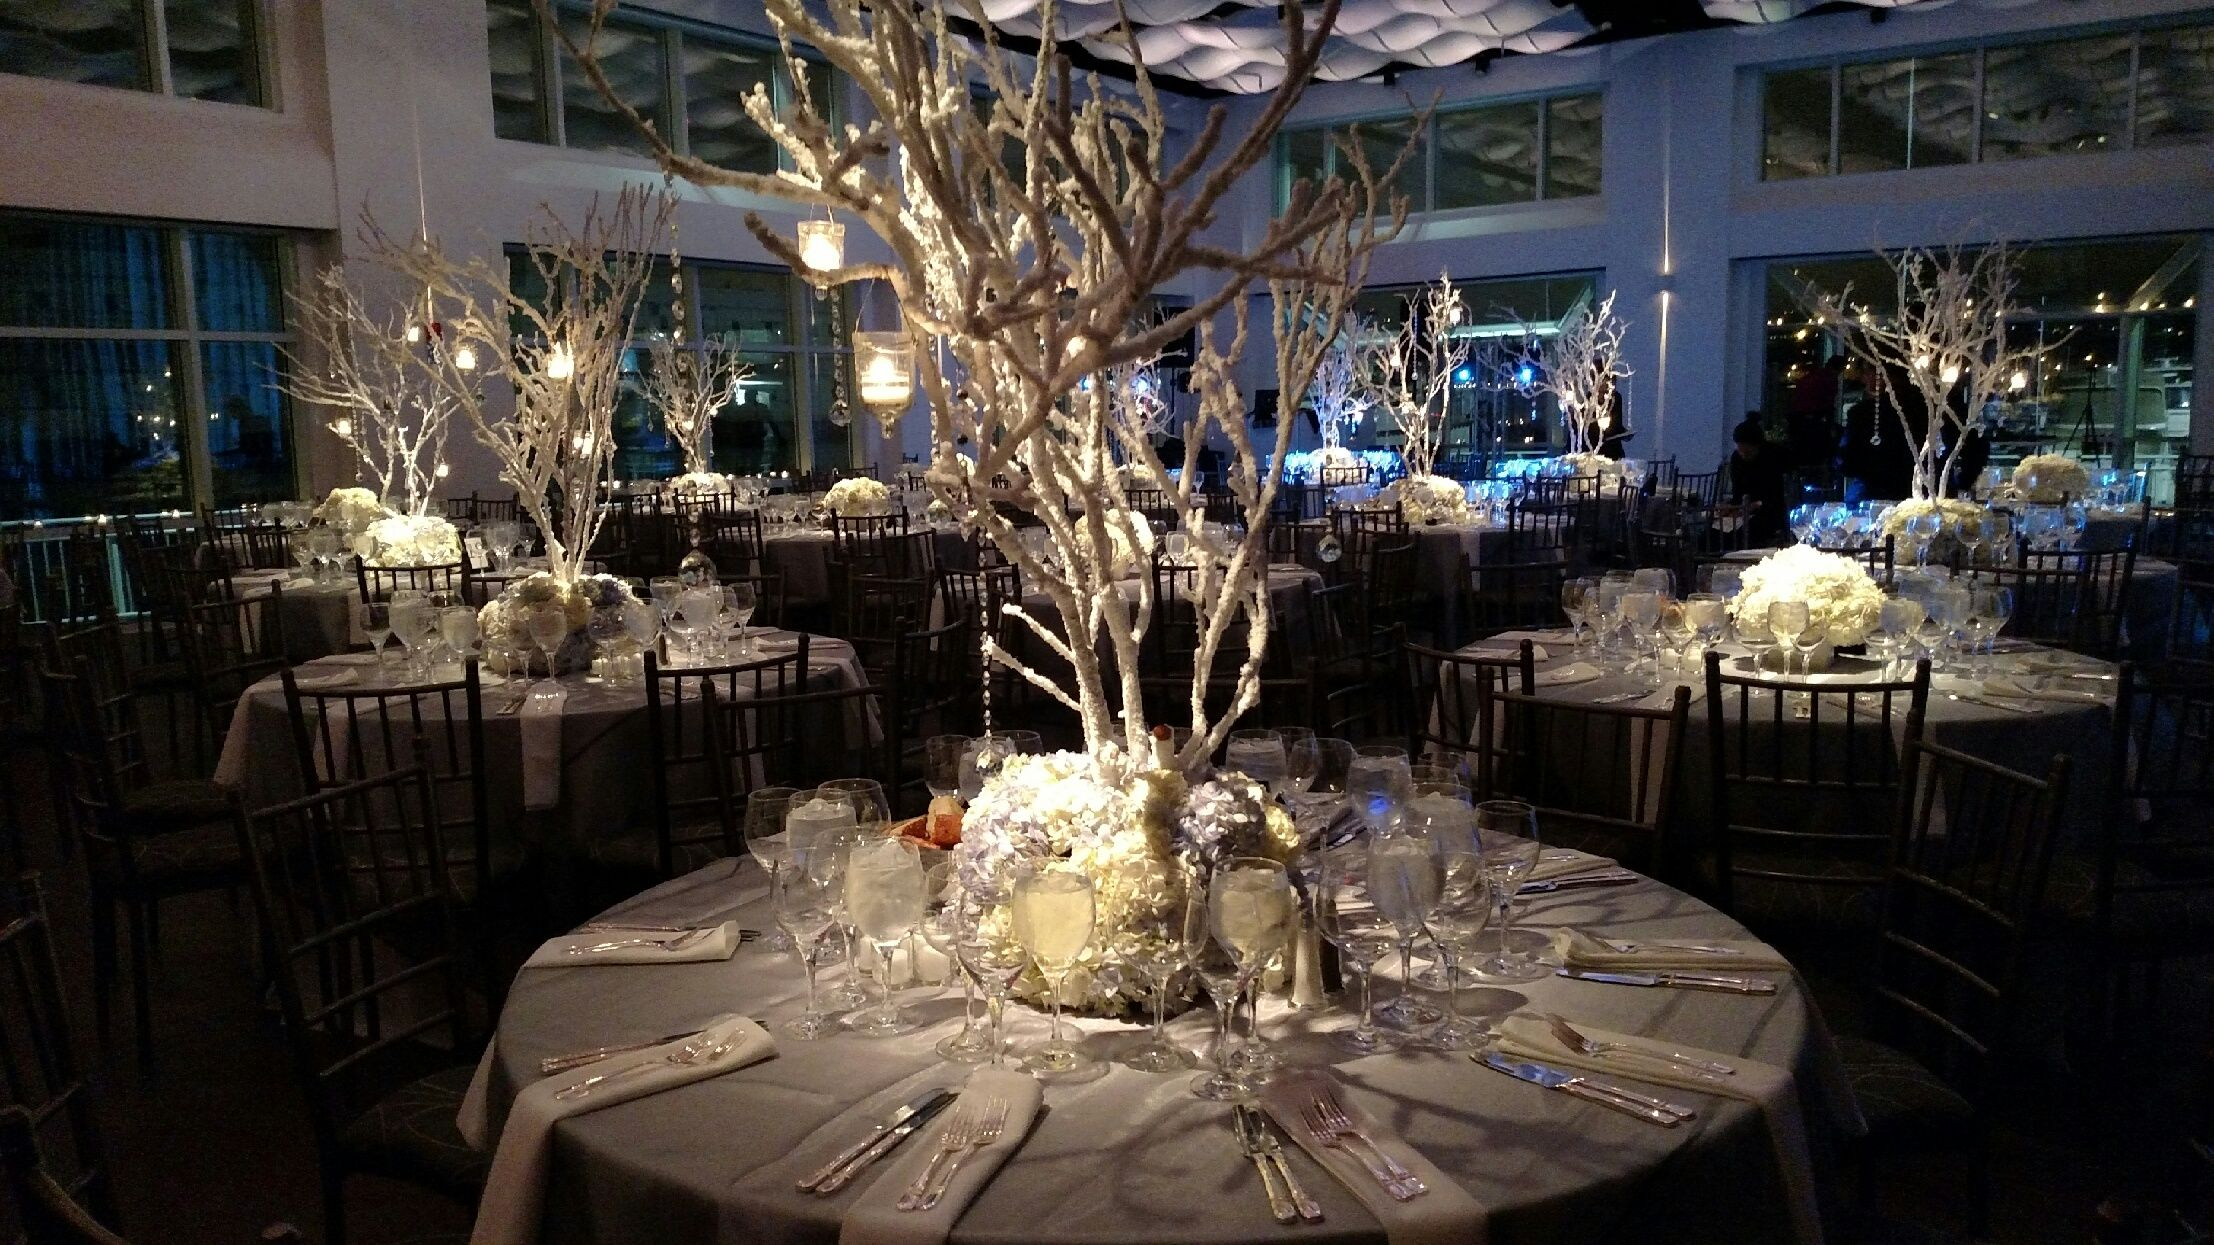 Winter white wedding centerpiece current pier 59 nyc pier winter white wedding centerpiece current pier 59 nyc junglespirit Images